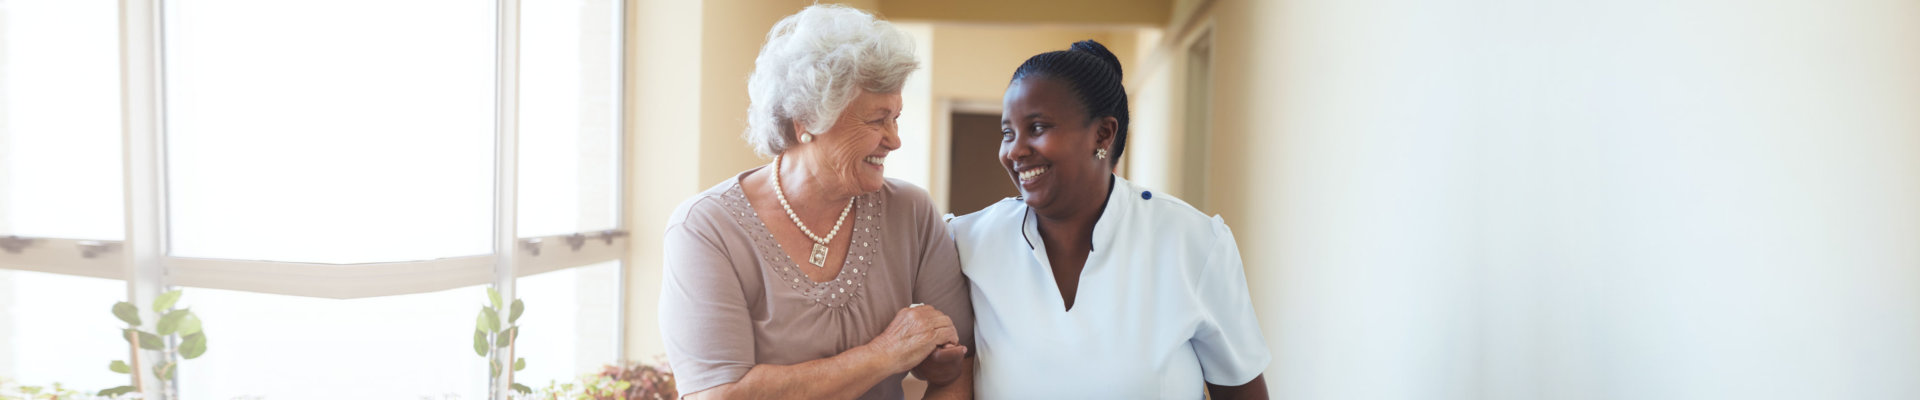 caregiver and elderly lady